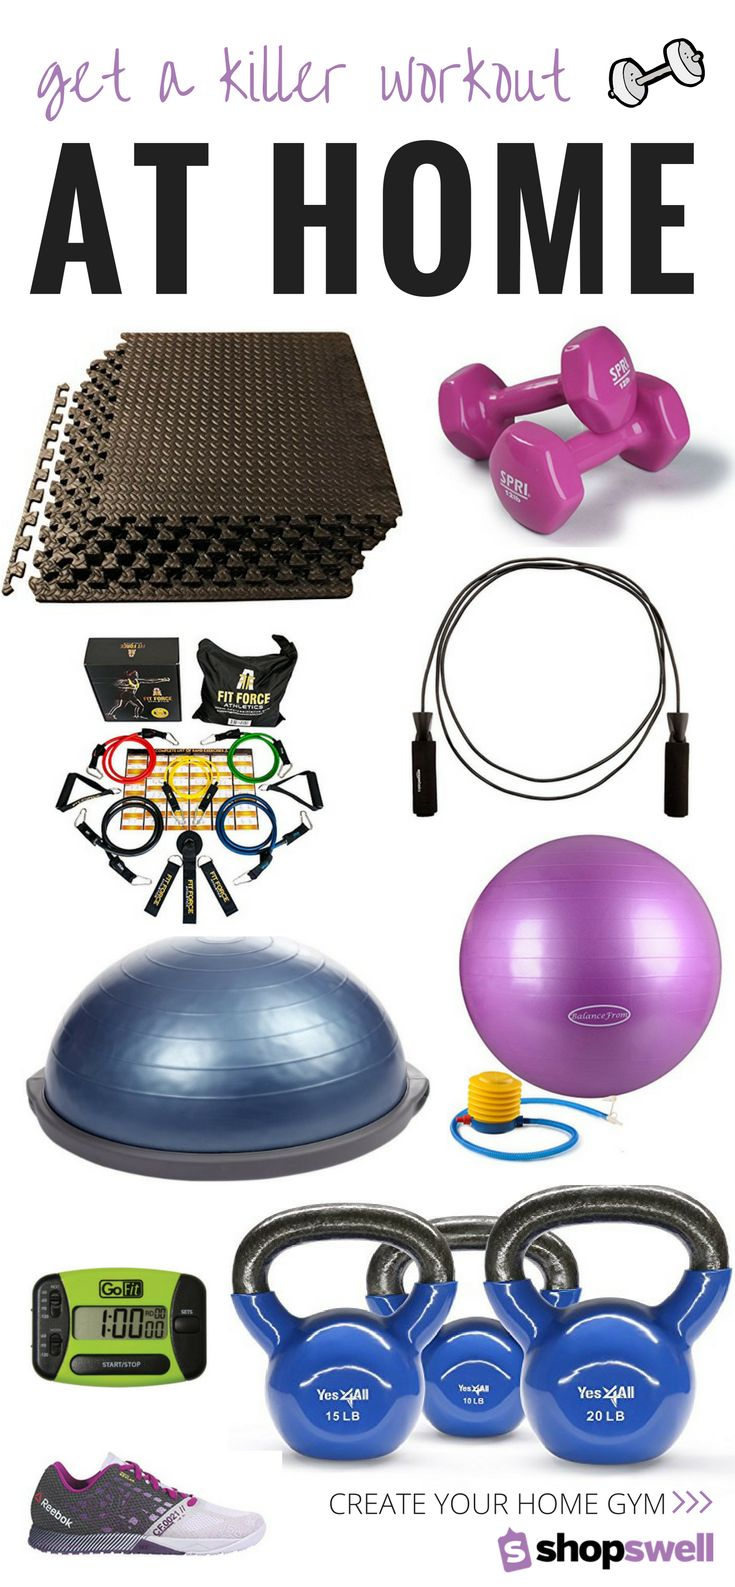 Get a killer workout at home with these 11 must-have fitness products. Shop the collection now!